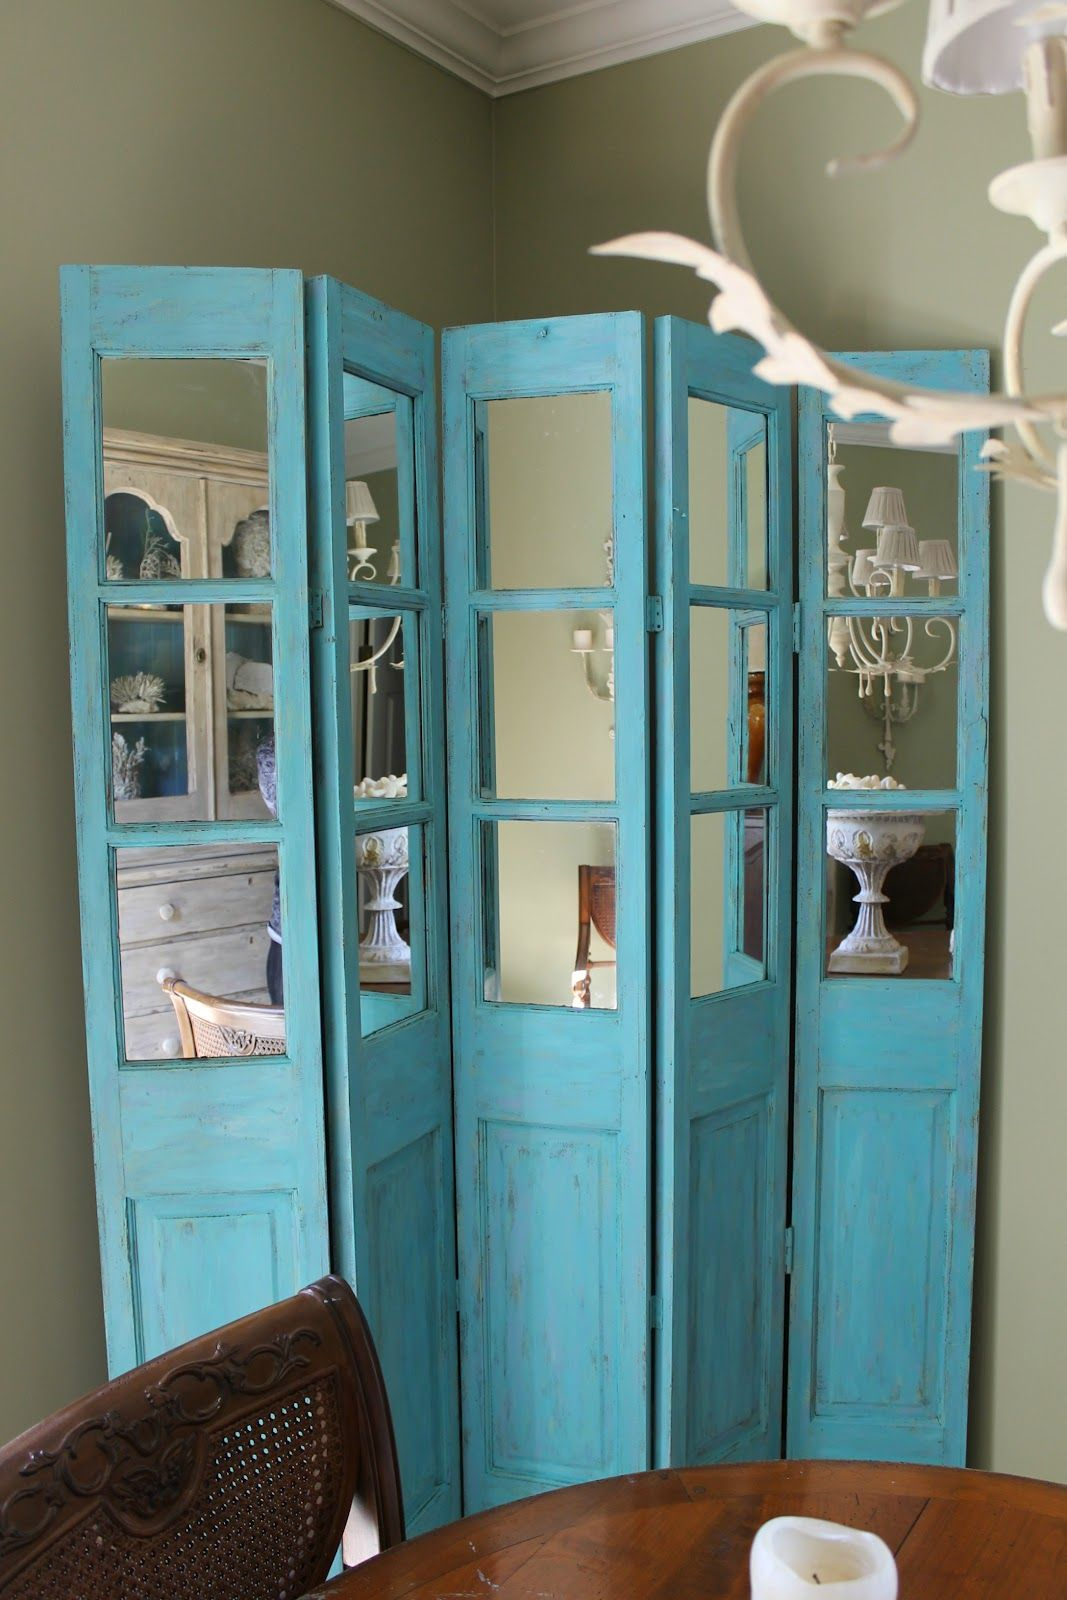 Diy room divider ideas home a screen makeover drab to beachy fab  ideas for the house